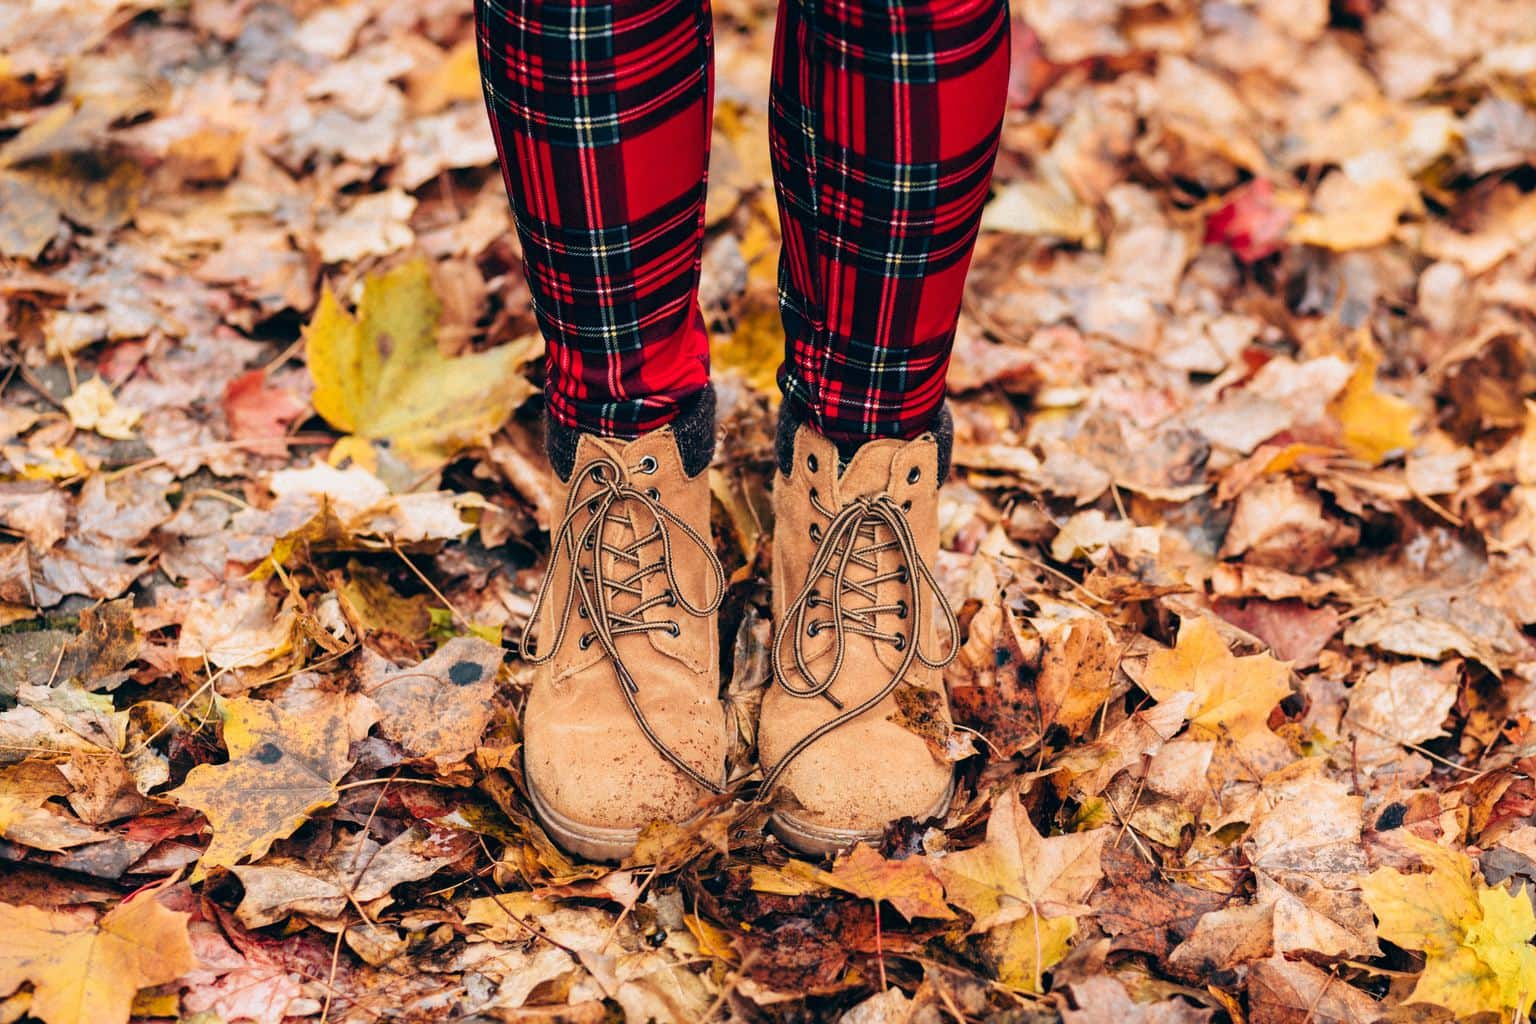 Lady's legs with red plaid leggings and tan boots amongst fallen leaves.